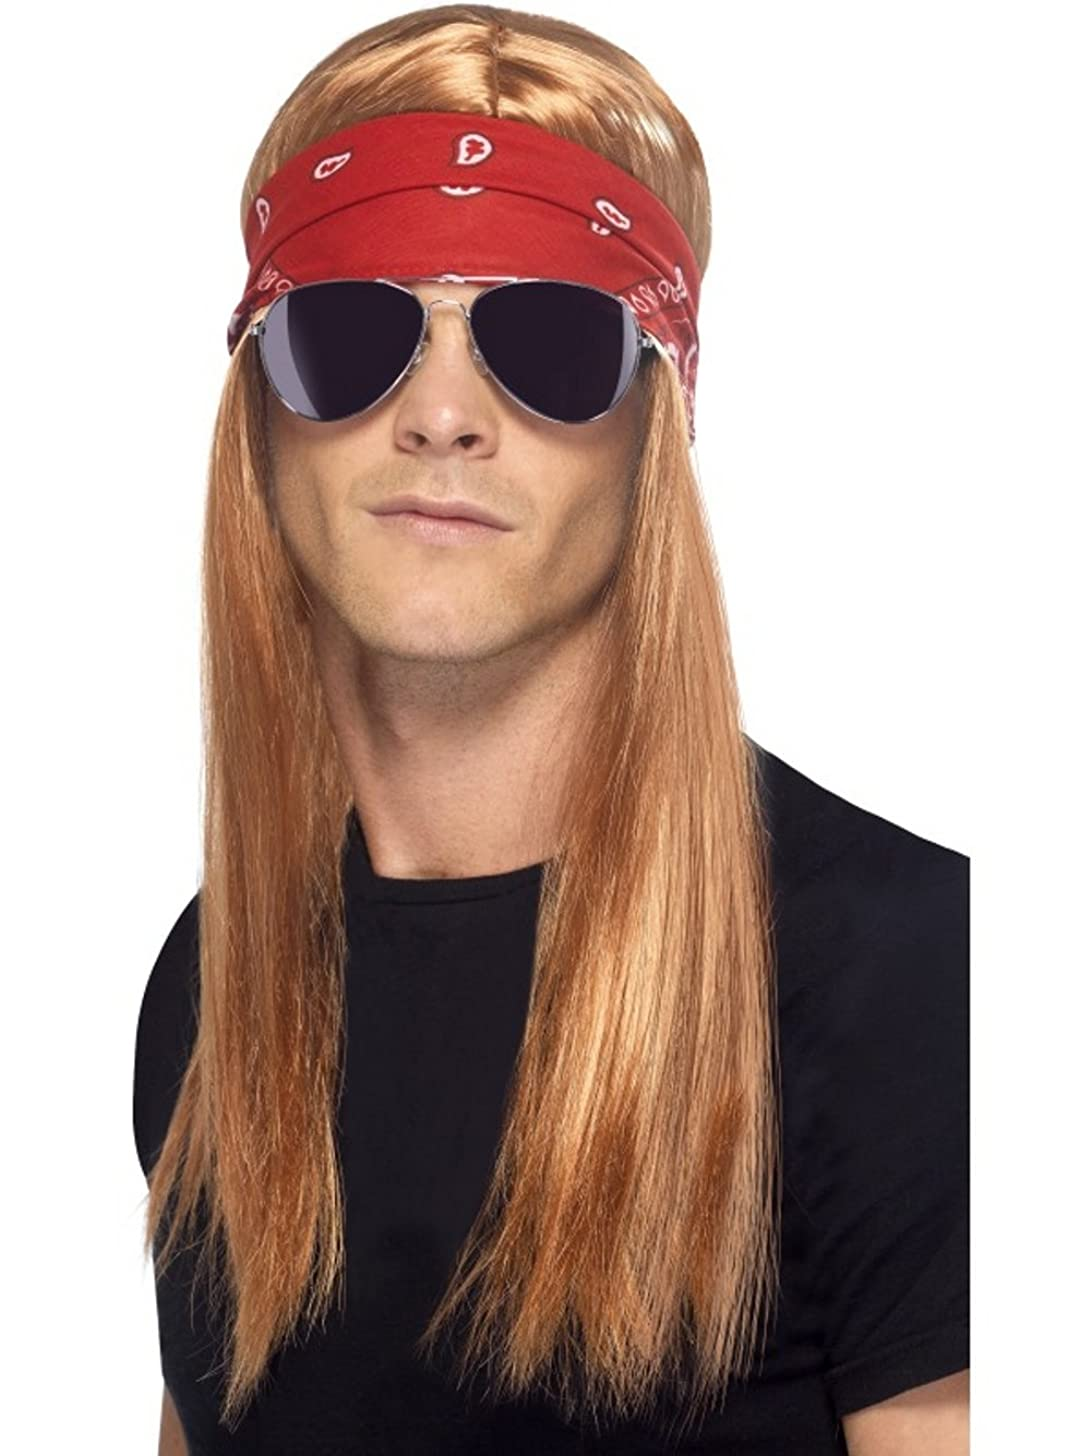 Axl Rose Wig with Bandana and Aviator Glasses